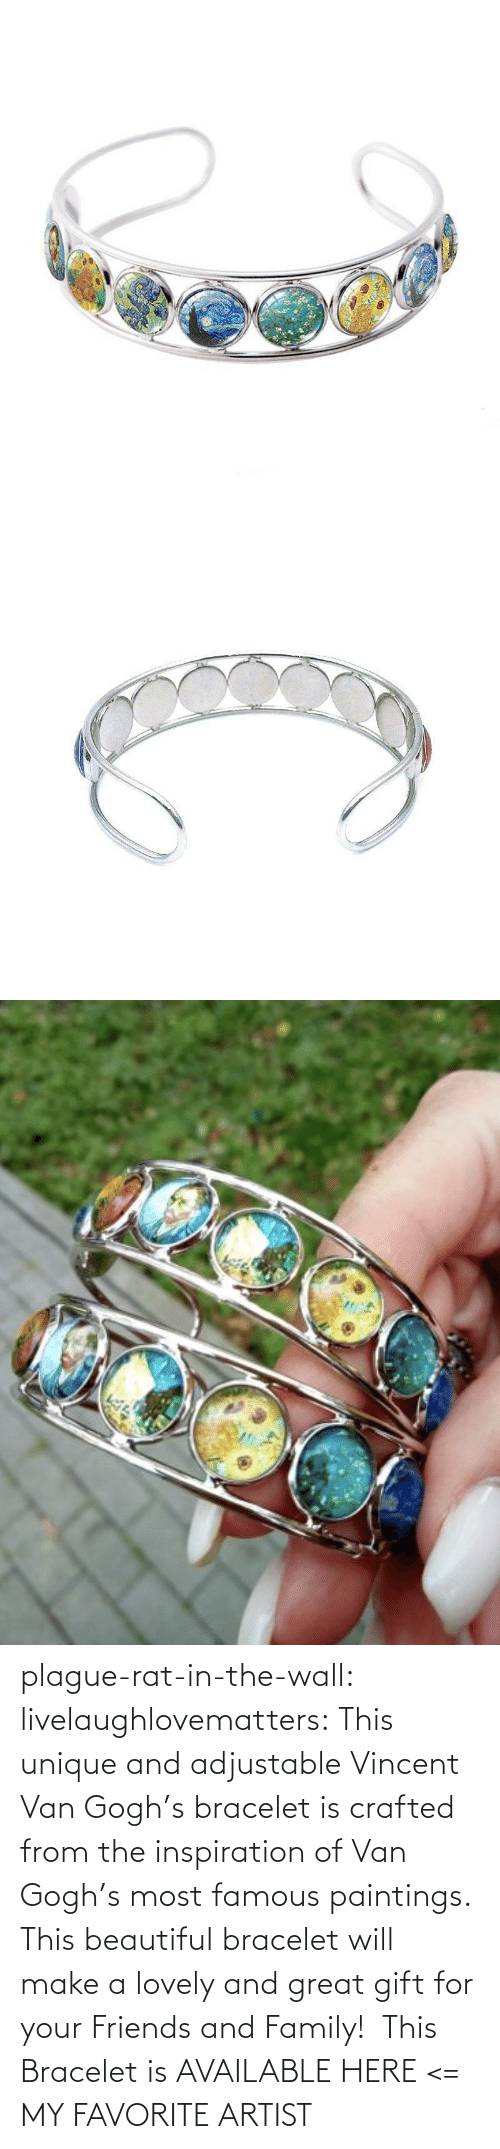 the wall: plague-rat-in-the-wall:  livelaughlovematters: This unique and adjustable Vincent Van Gogh's bracelet is crafted from the inspiration of Van Gogh's most famous paintings. This beautiful bracelet will make a lovely and great gift for your Friends and Family!  This Bracelet is AVAILABLE HERE <=  MY FAVORITE ARTIST